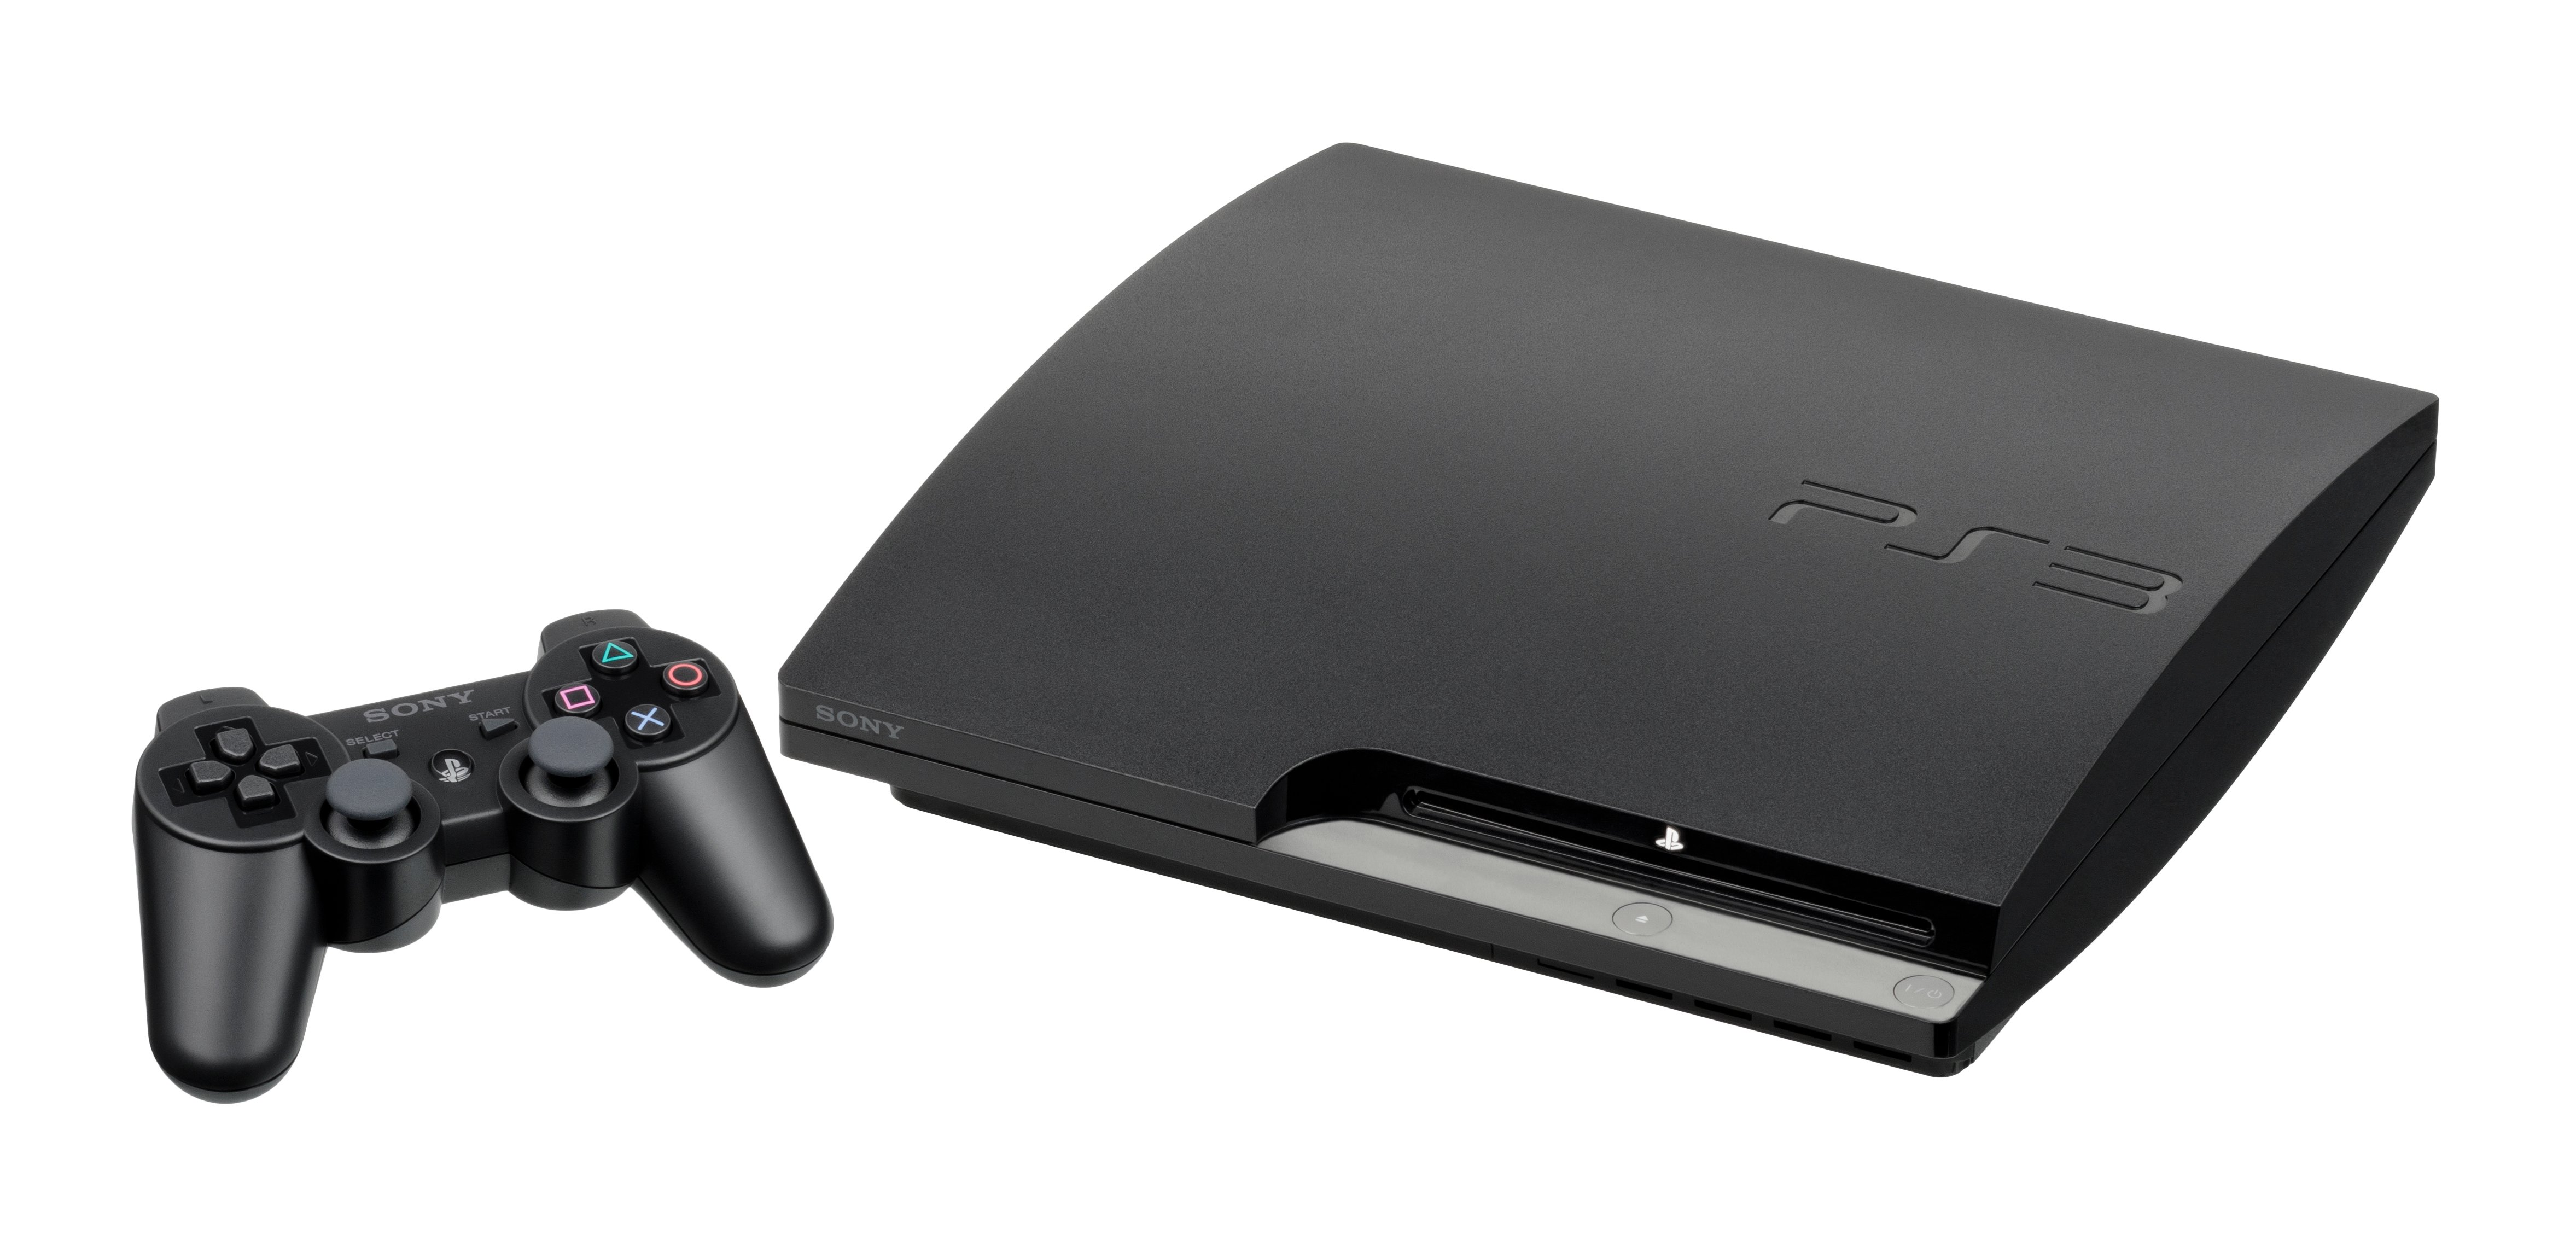 Getting the most out of your PlayStation 3 in 2018 screenshot